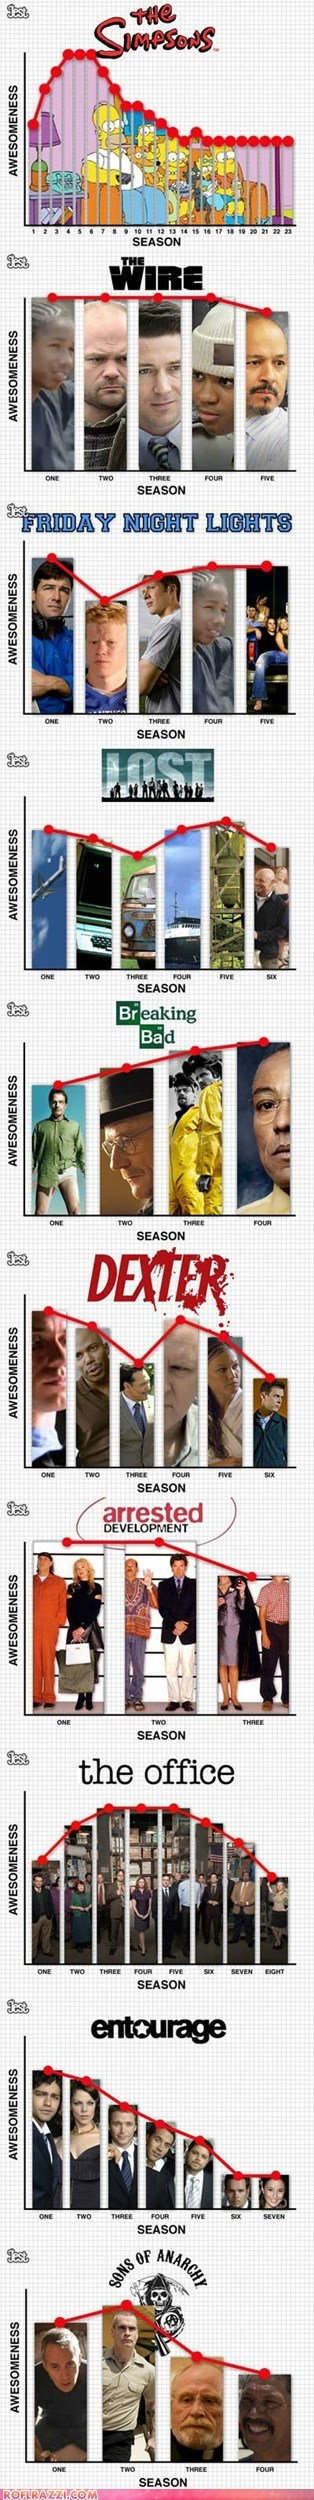 TV Seasons by Quality